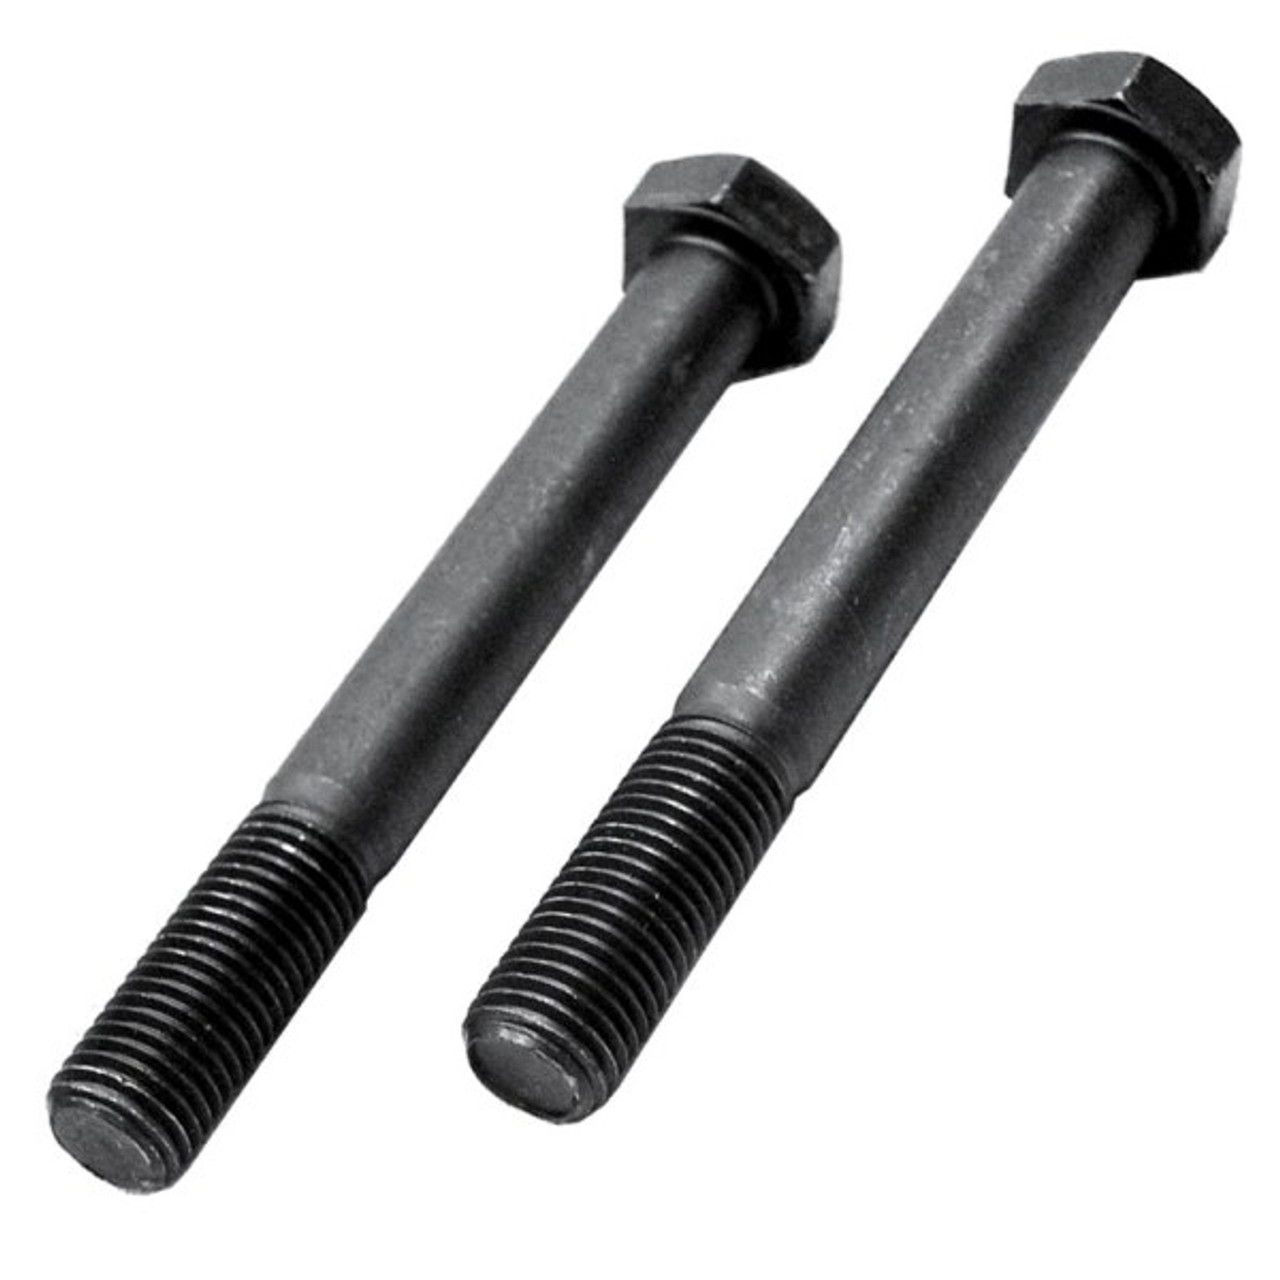 Empi 22-2816 Caster Shim Bolts Vw Bug/Ghia Ball Joint Or King Pin Front  Ends, Pr